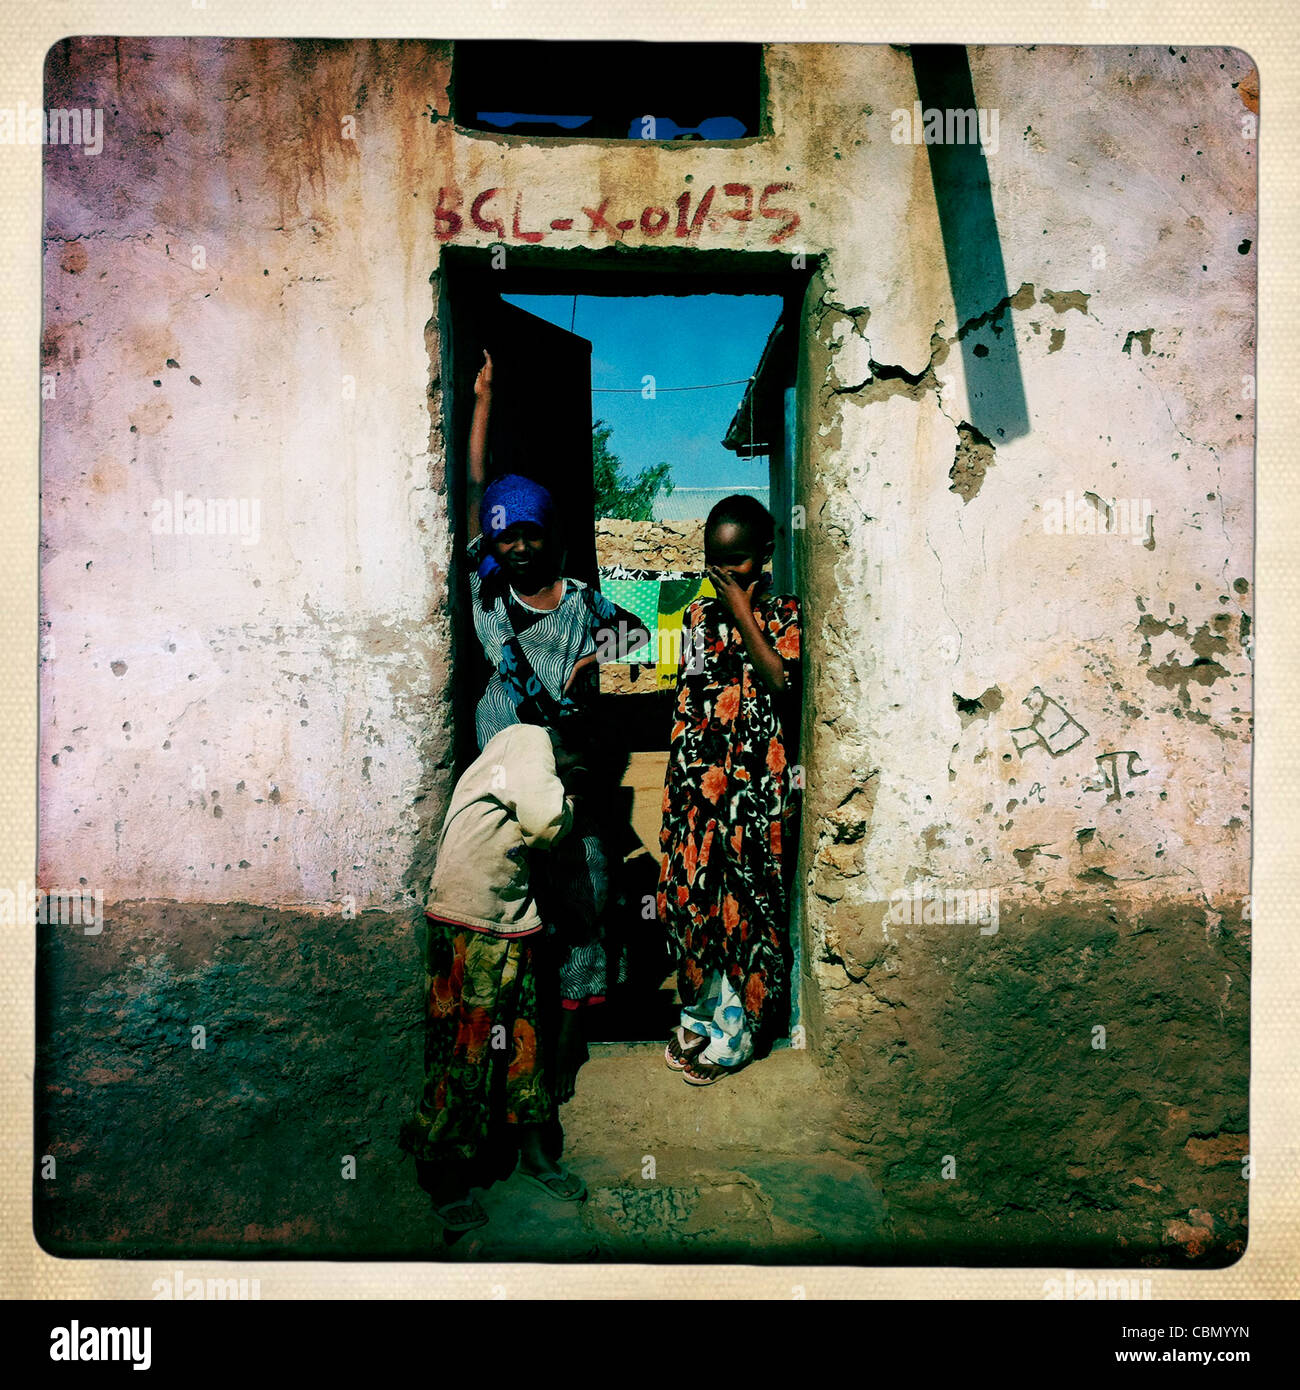 Three Youngsters In The Frame Of A Door Of Decrepit house In Baligubadle Somaliland - Stock Image